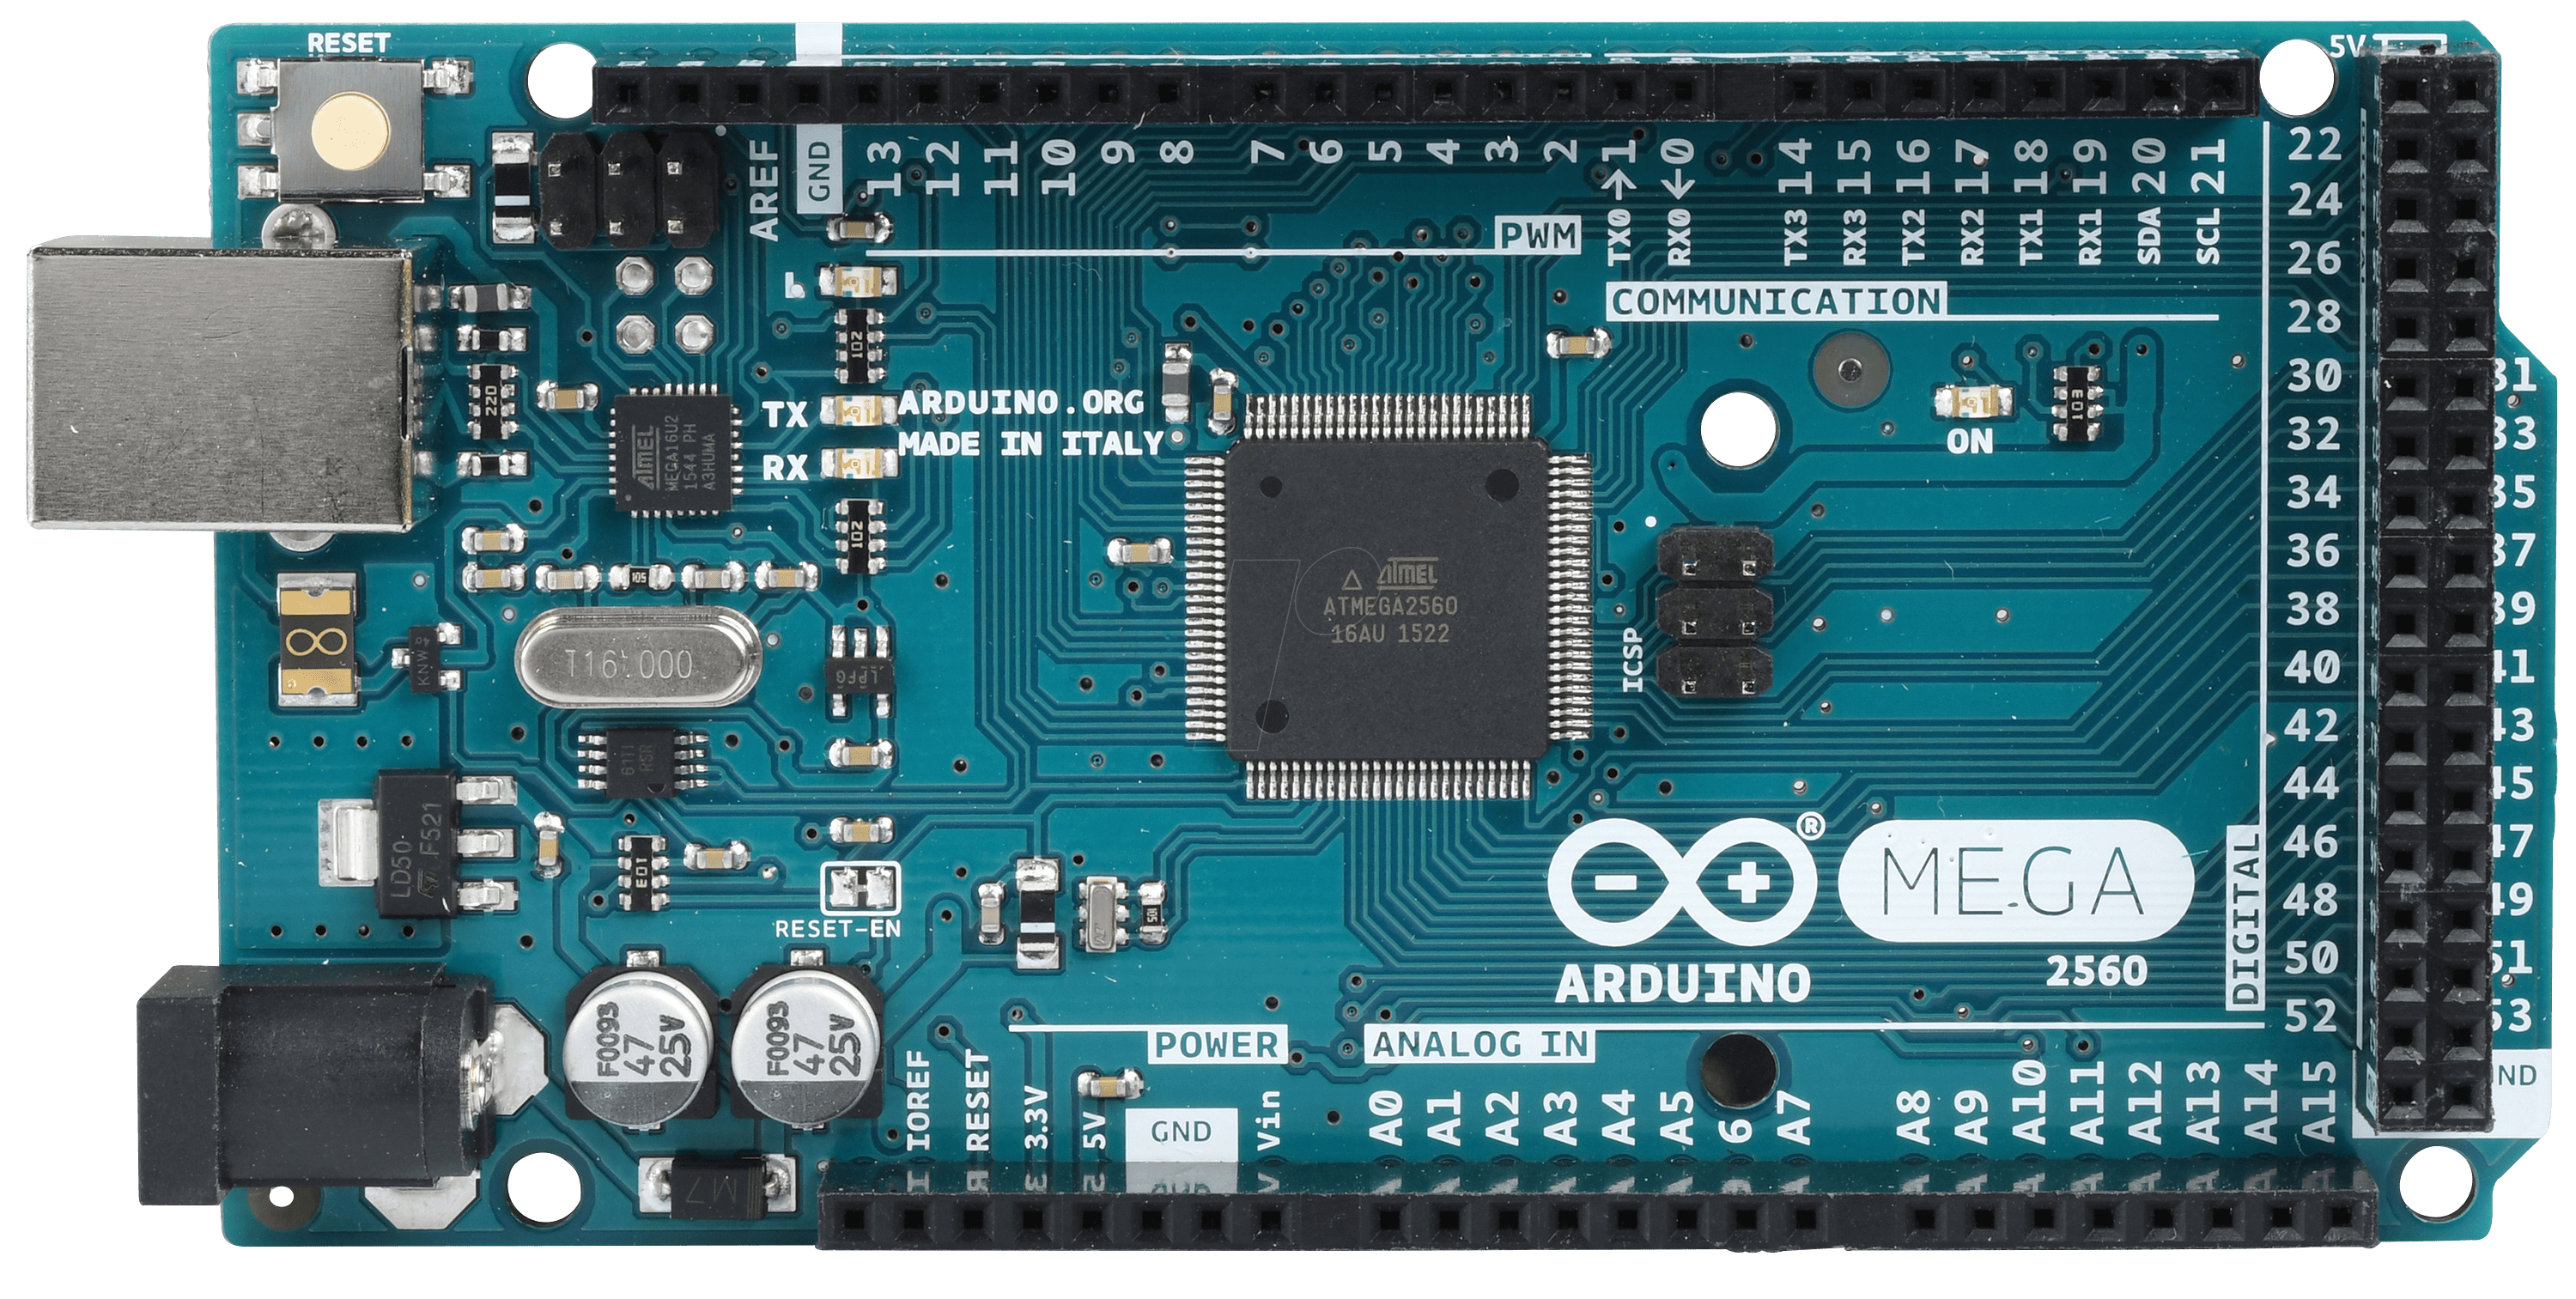 Unable to Read Xbee API with Serial Arduino Mega 2560